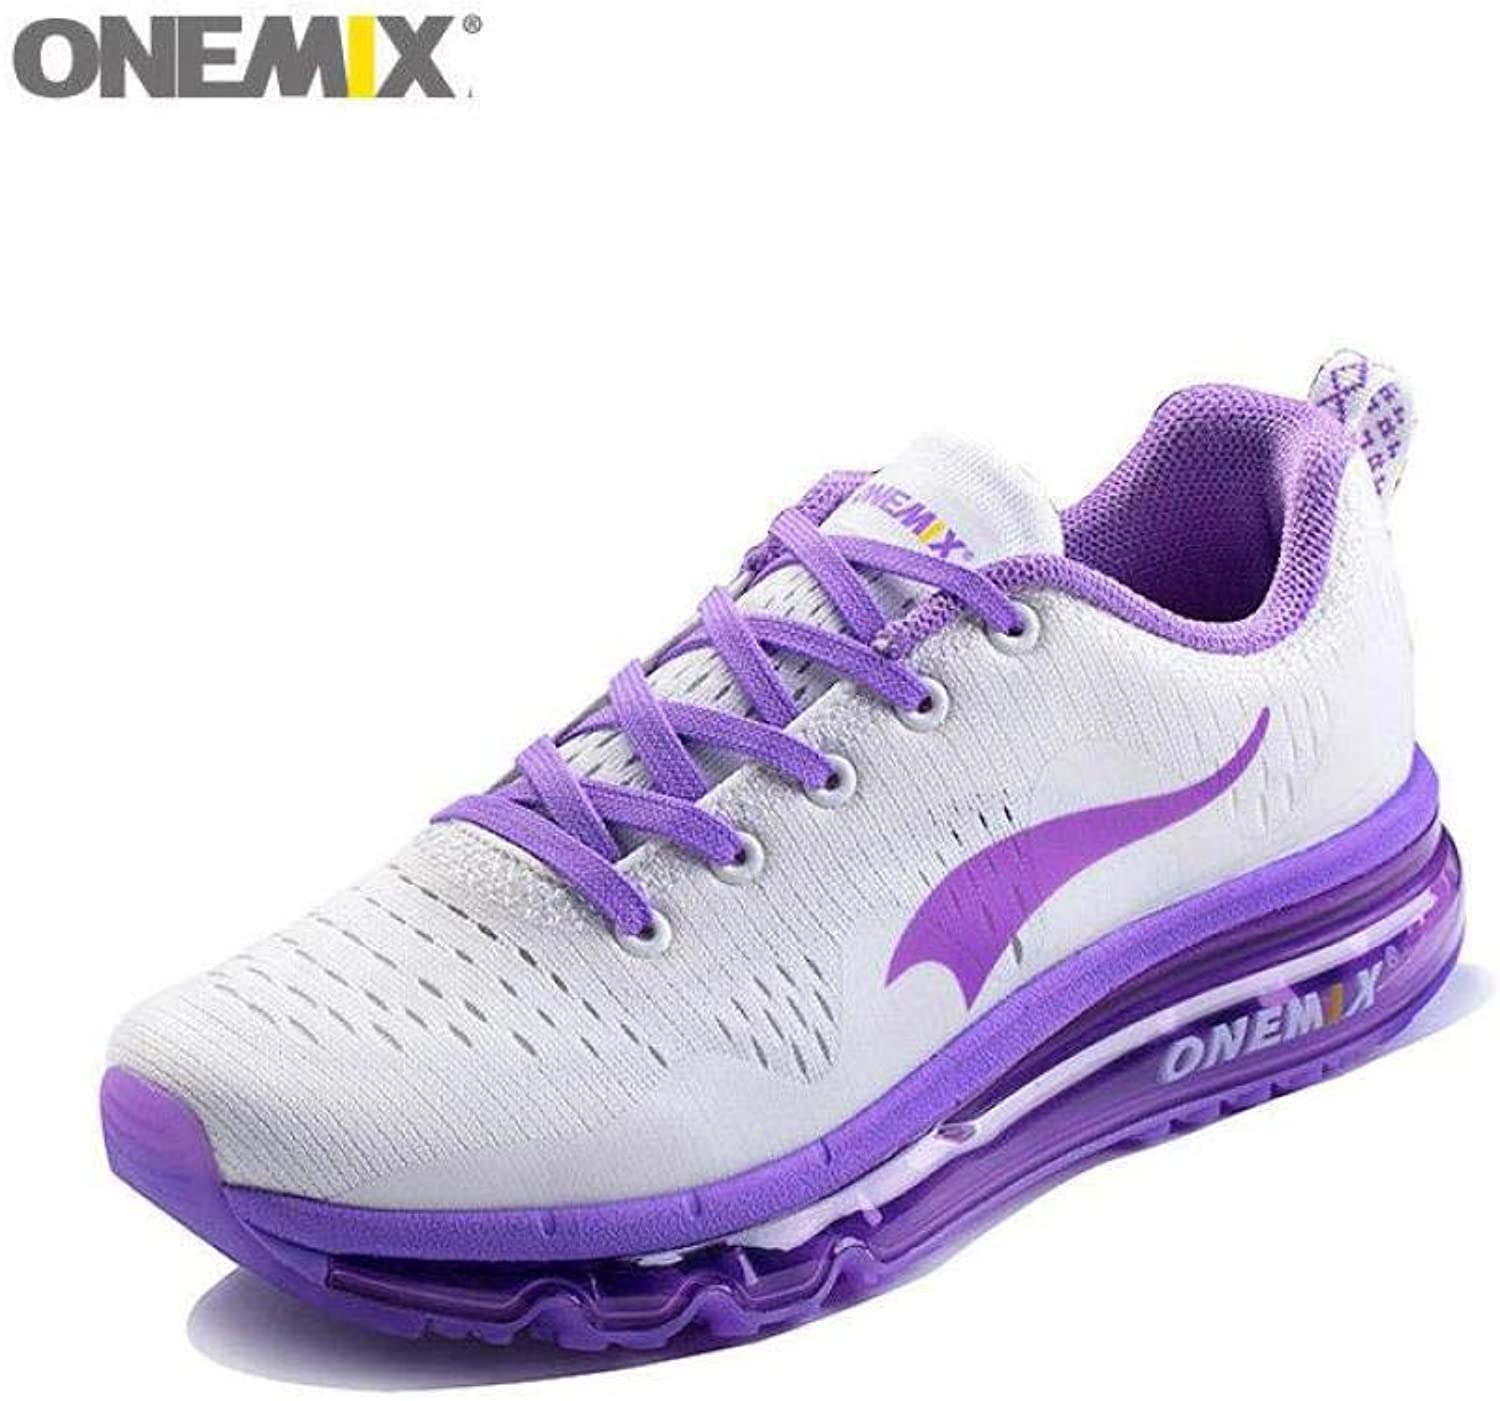 FidgetFidget Fashion Women's Smart Running shoes Athletic Sneakers Casual Gym Trainers Purpl4 Purple